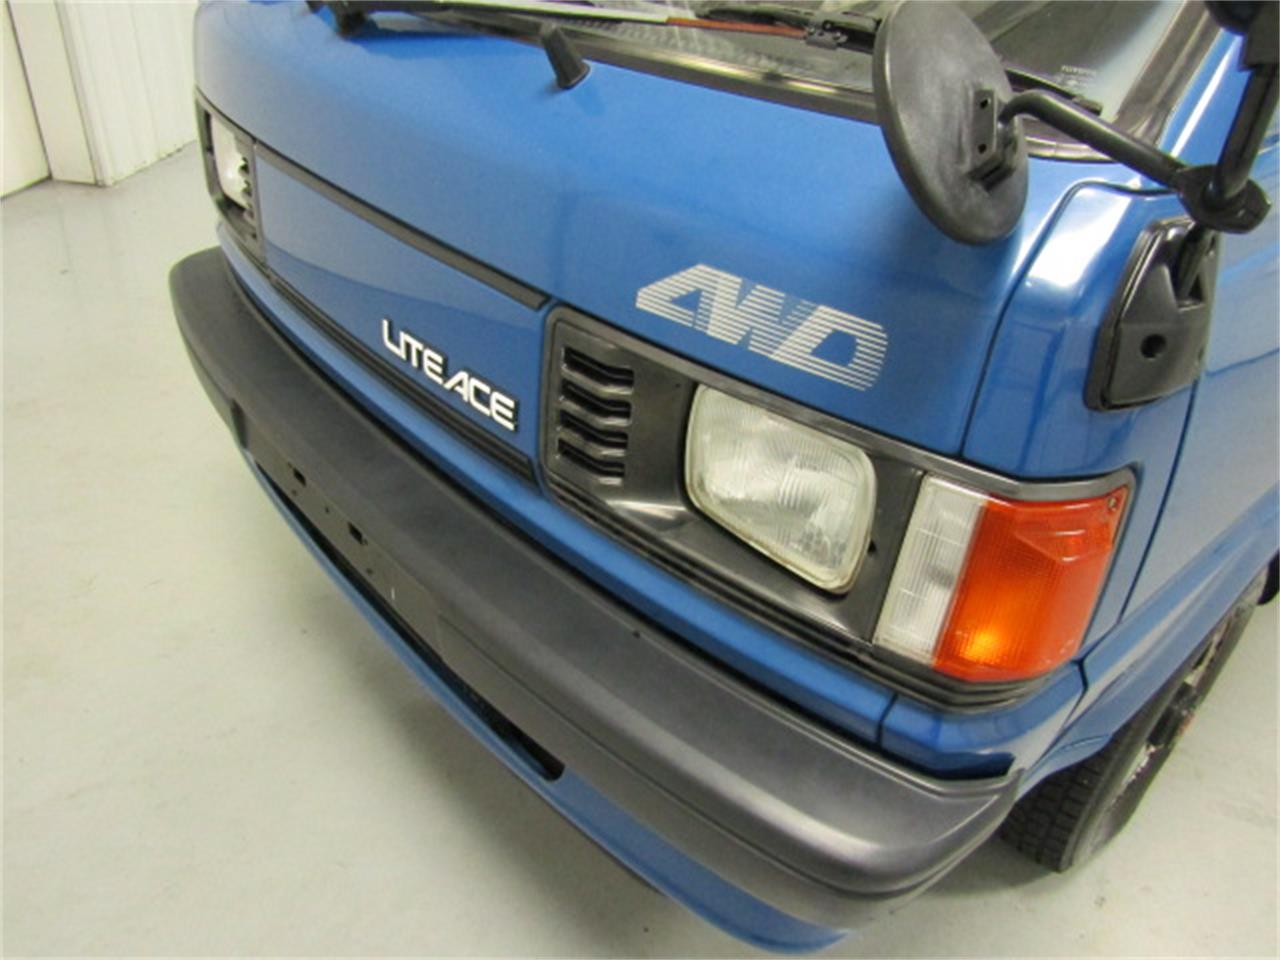 Large Picture of '90 Toyota LiteAce located in Virginia - $7,979.00 Offered by Duncan Imports & Classic Cars - JM5H